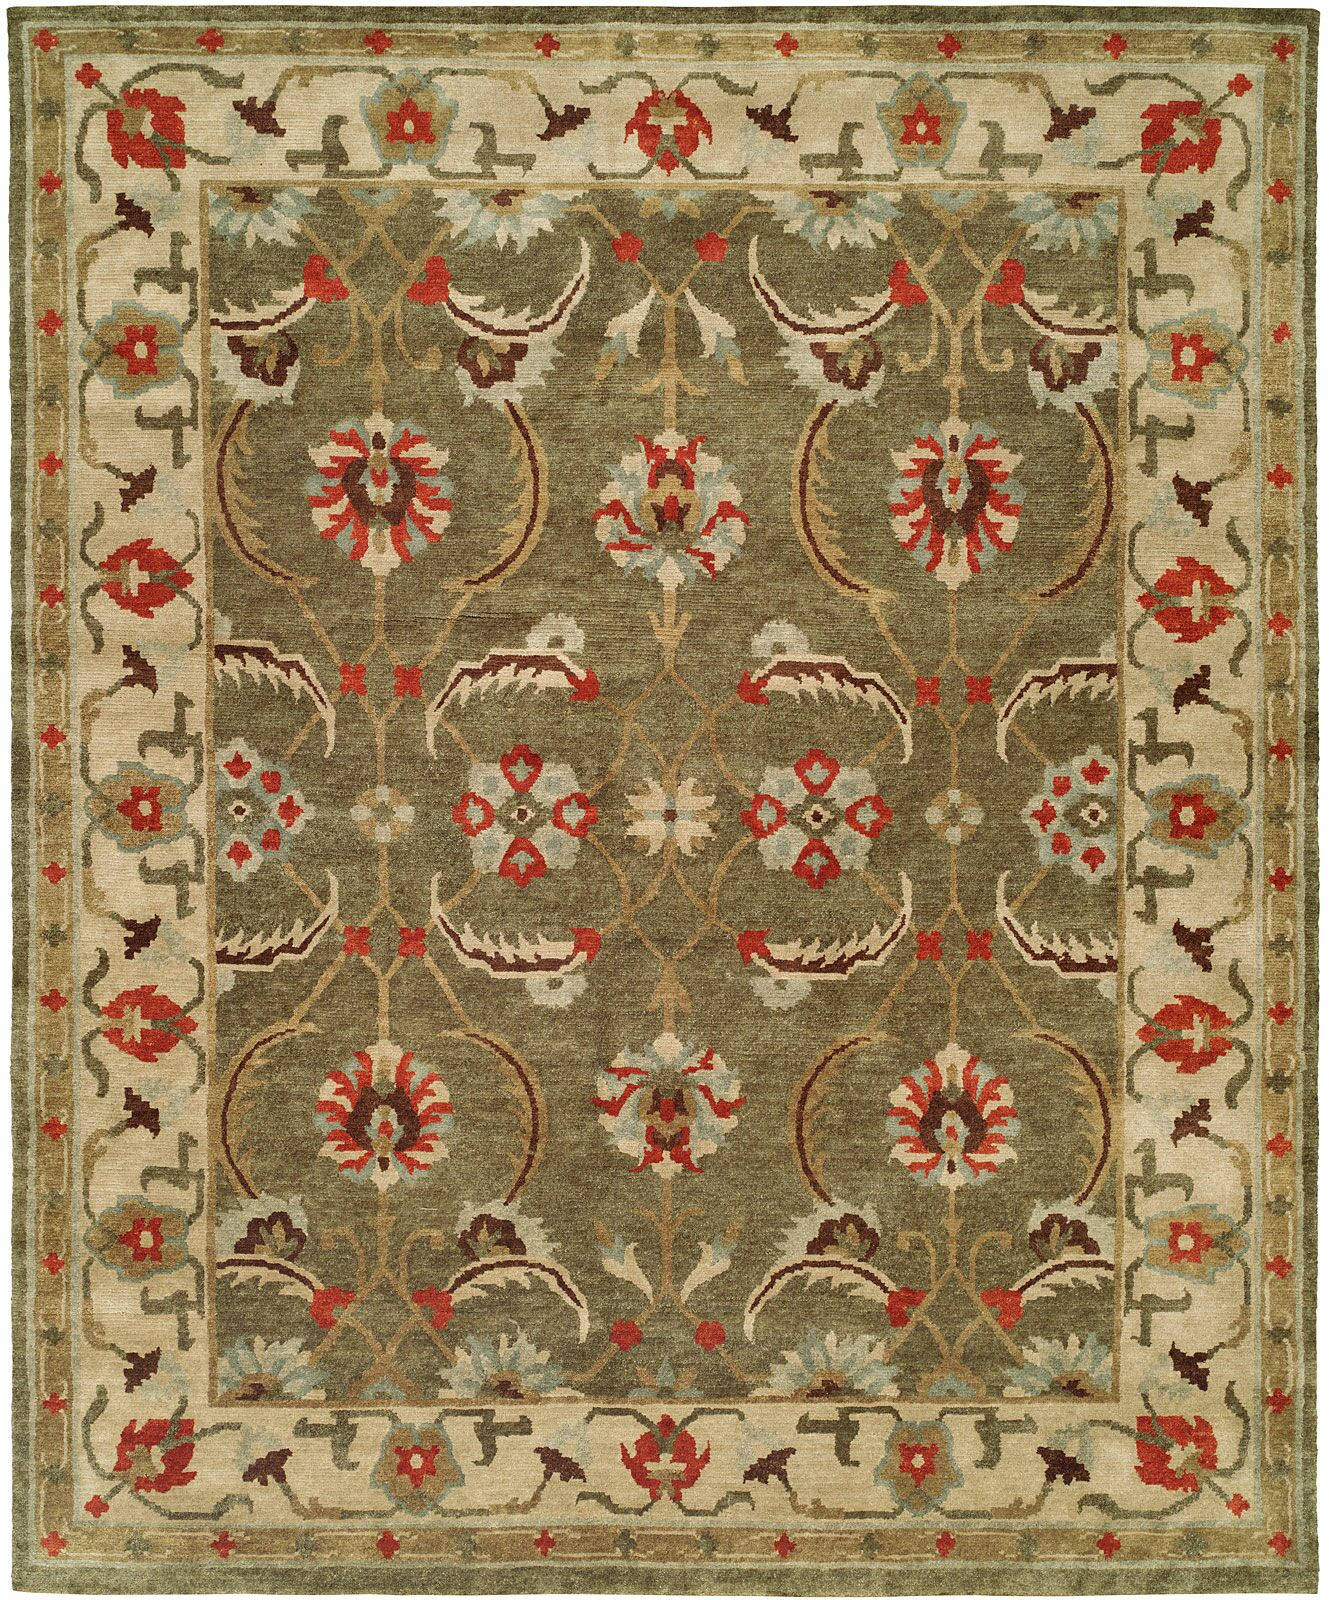 Hor Hand Knotted Wool Green/IvoryArea Rug Rug Size: Rectangle 3' x 5'